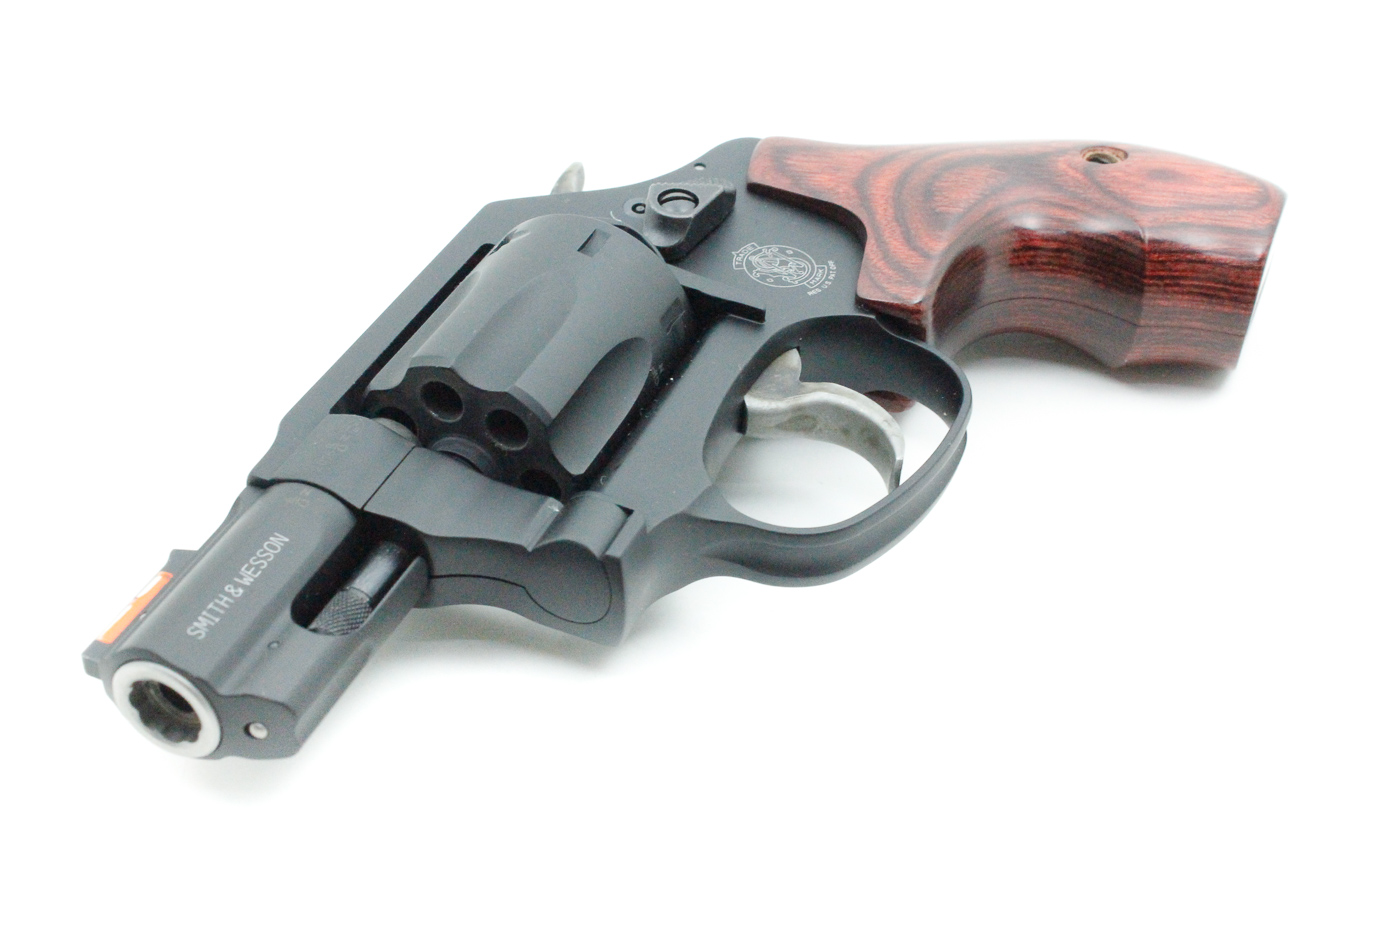 Smith & Wesson 351 PD, .22 Magnum - Image 7